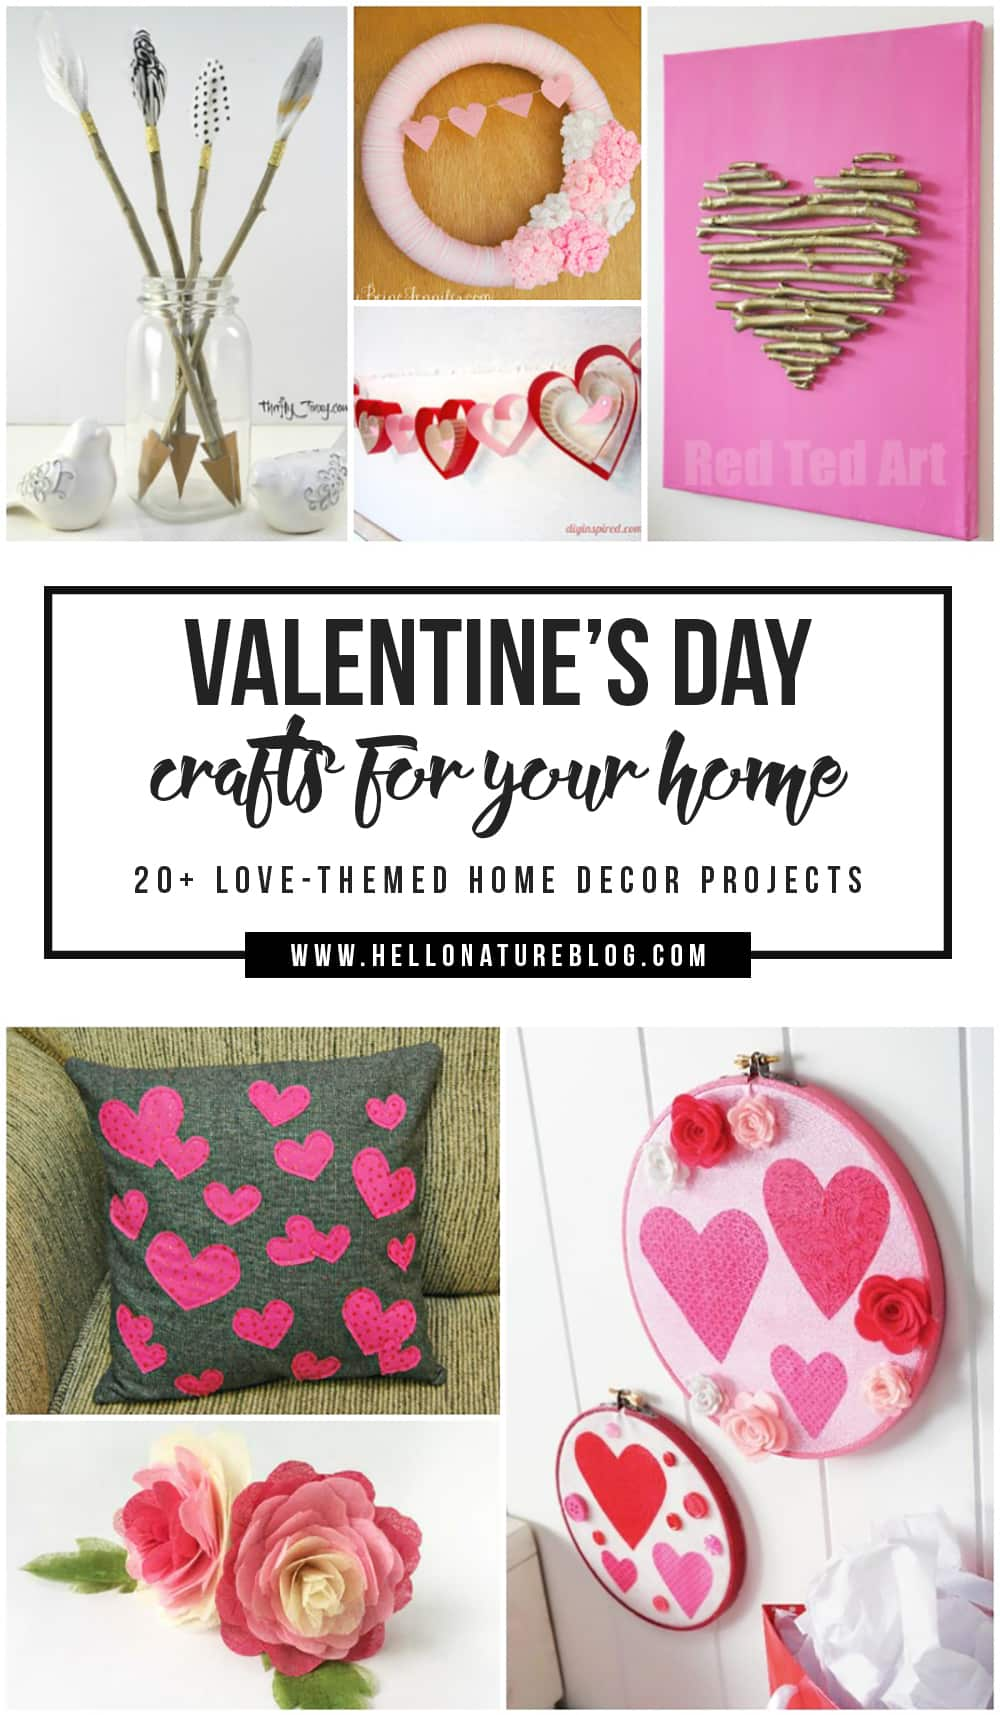 Everyone always talks about the flowers and candy for this sweet holiday. But what about your house? I'm sure it could use some extra lovin', too! Use these Valentine's Day crafts for your home to add some love-themed accents to it this Valentine's Day.